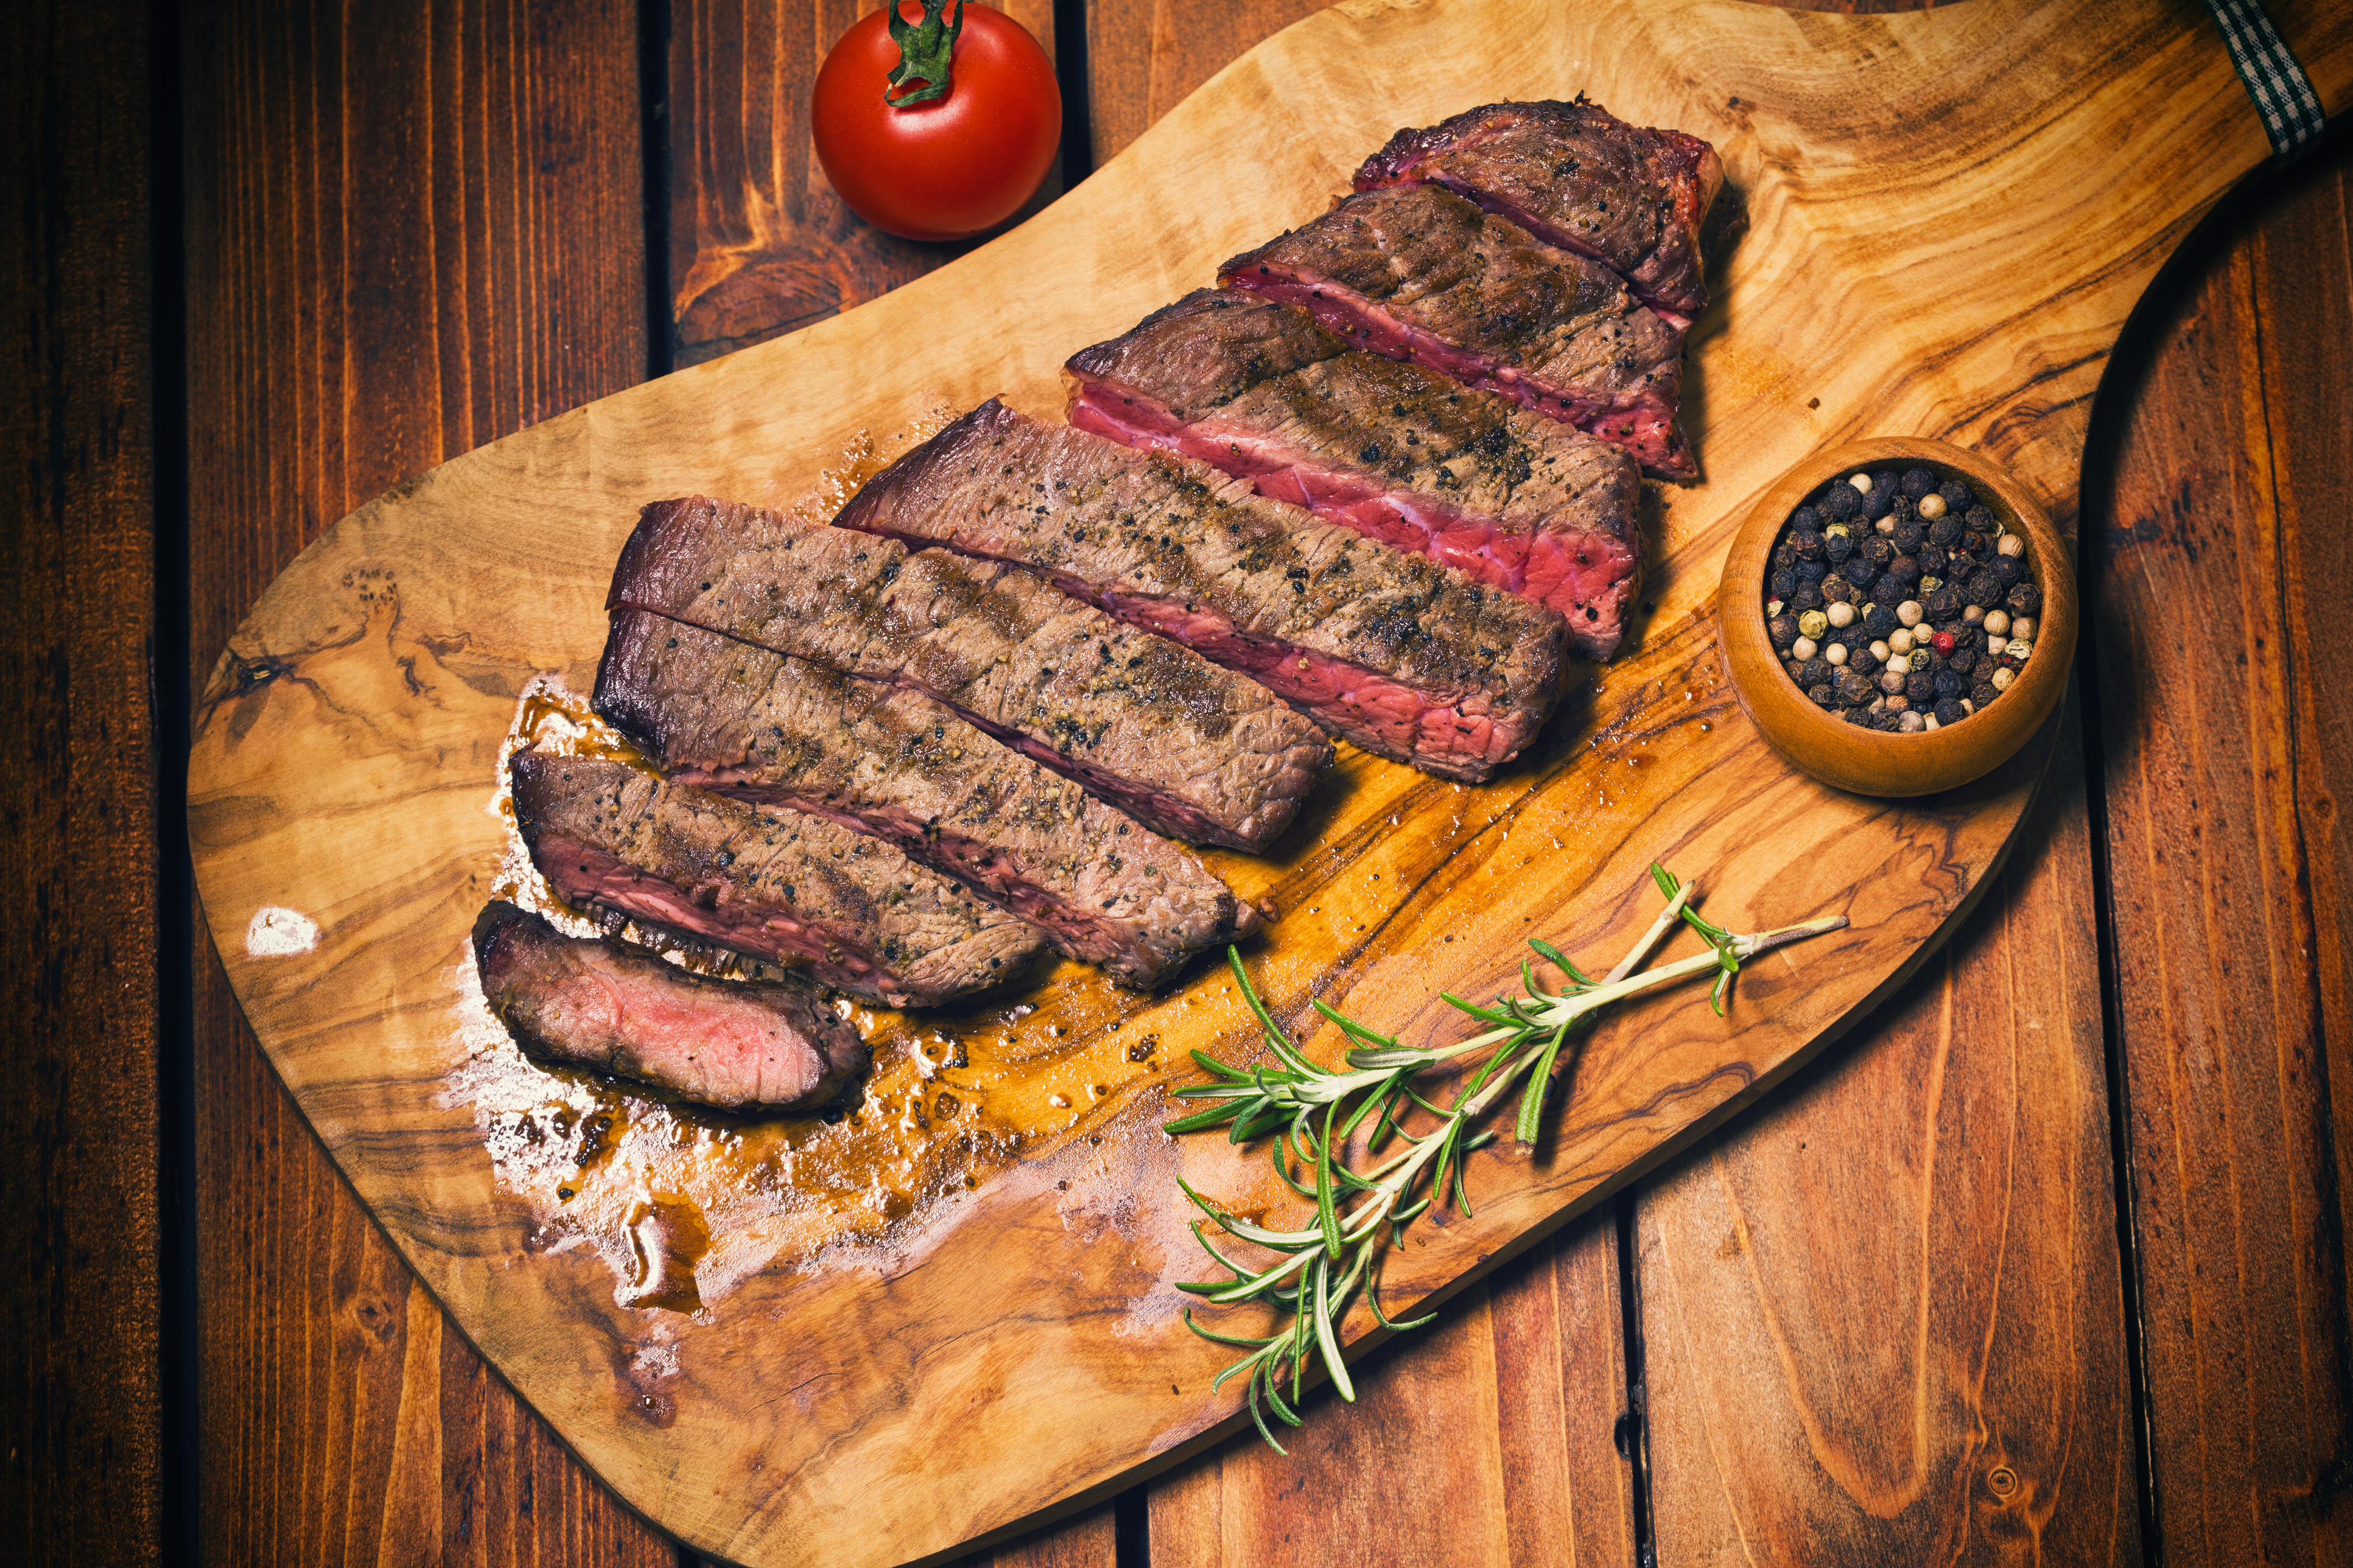 Grilled Juicy Beef Steak